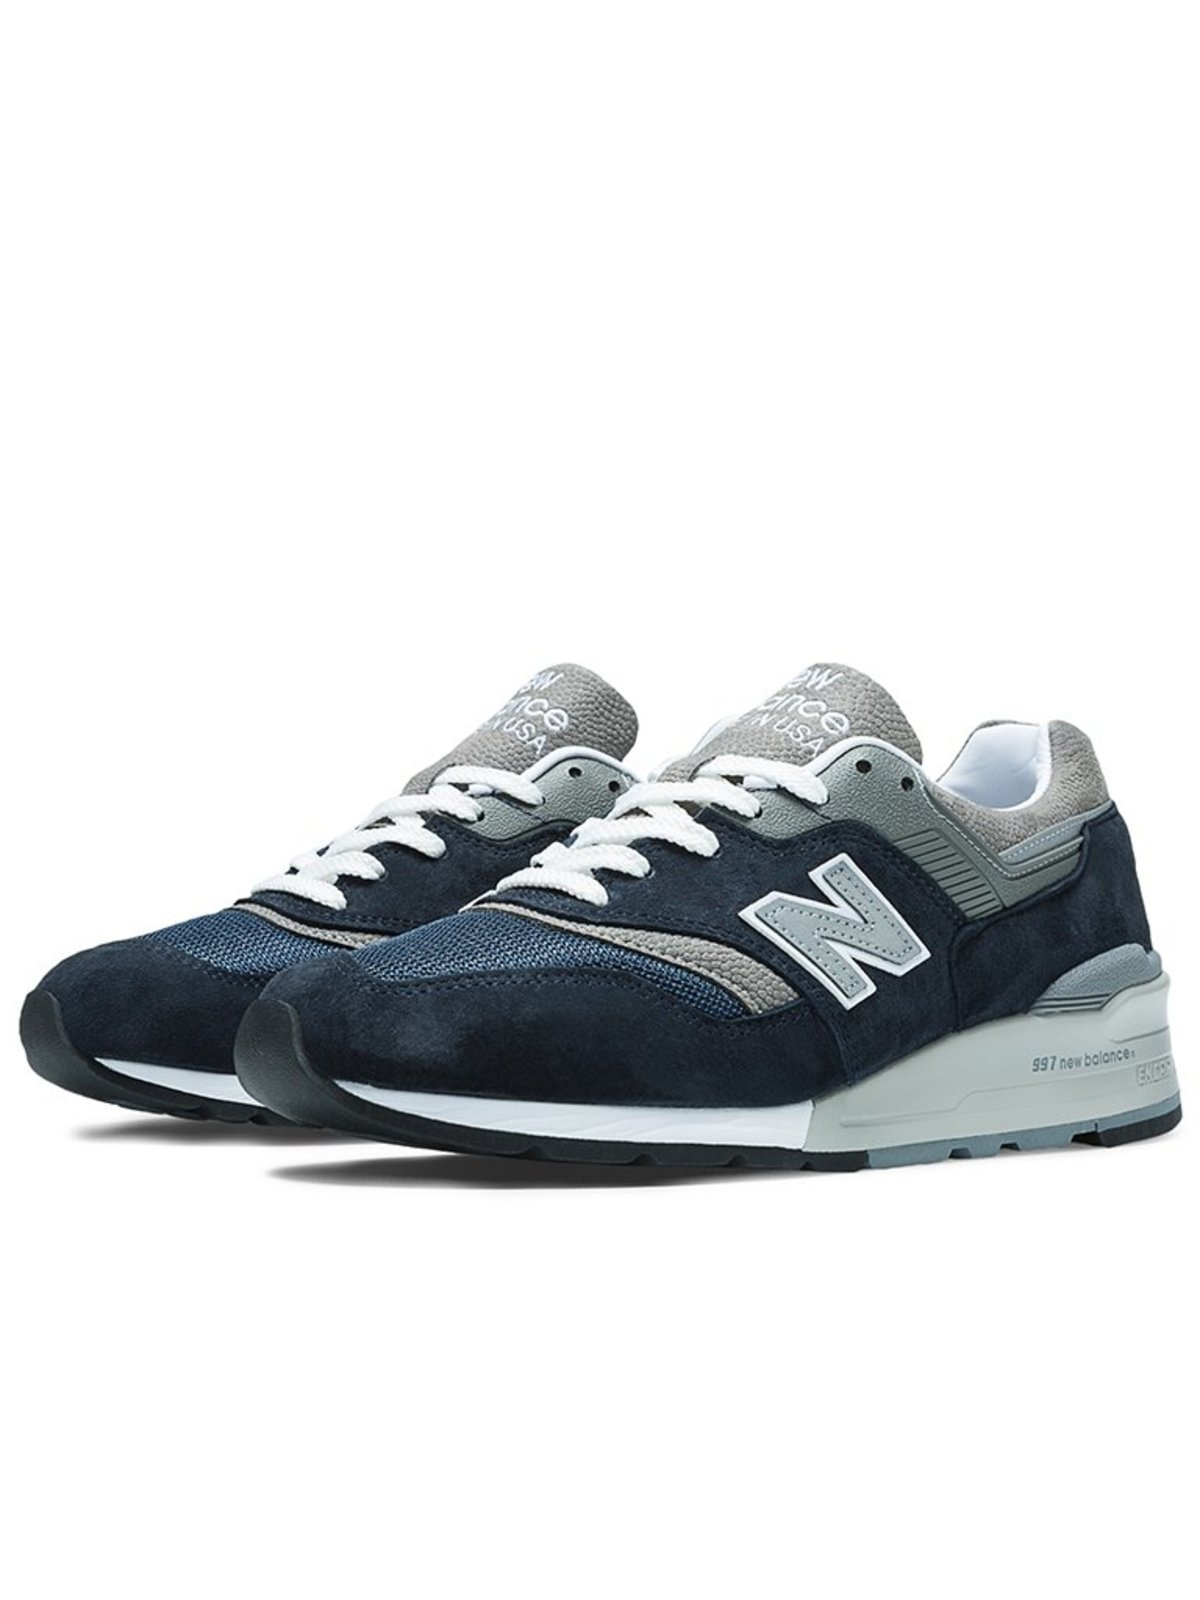 new balance 997 infant trainer for sale